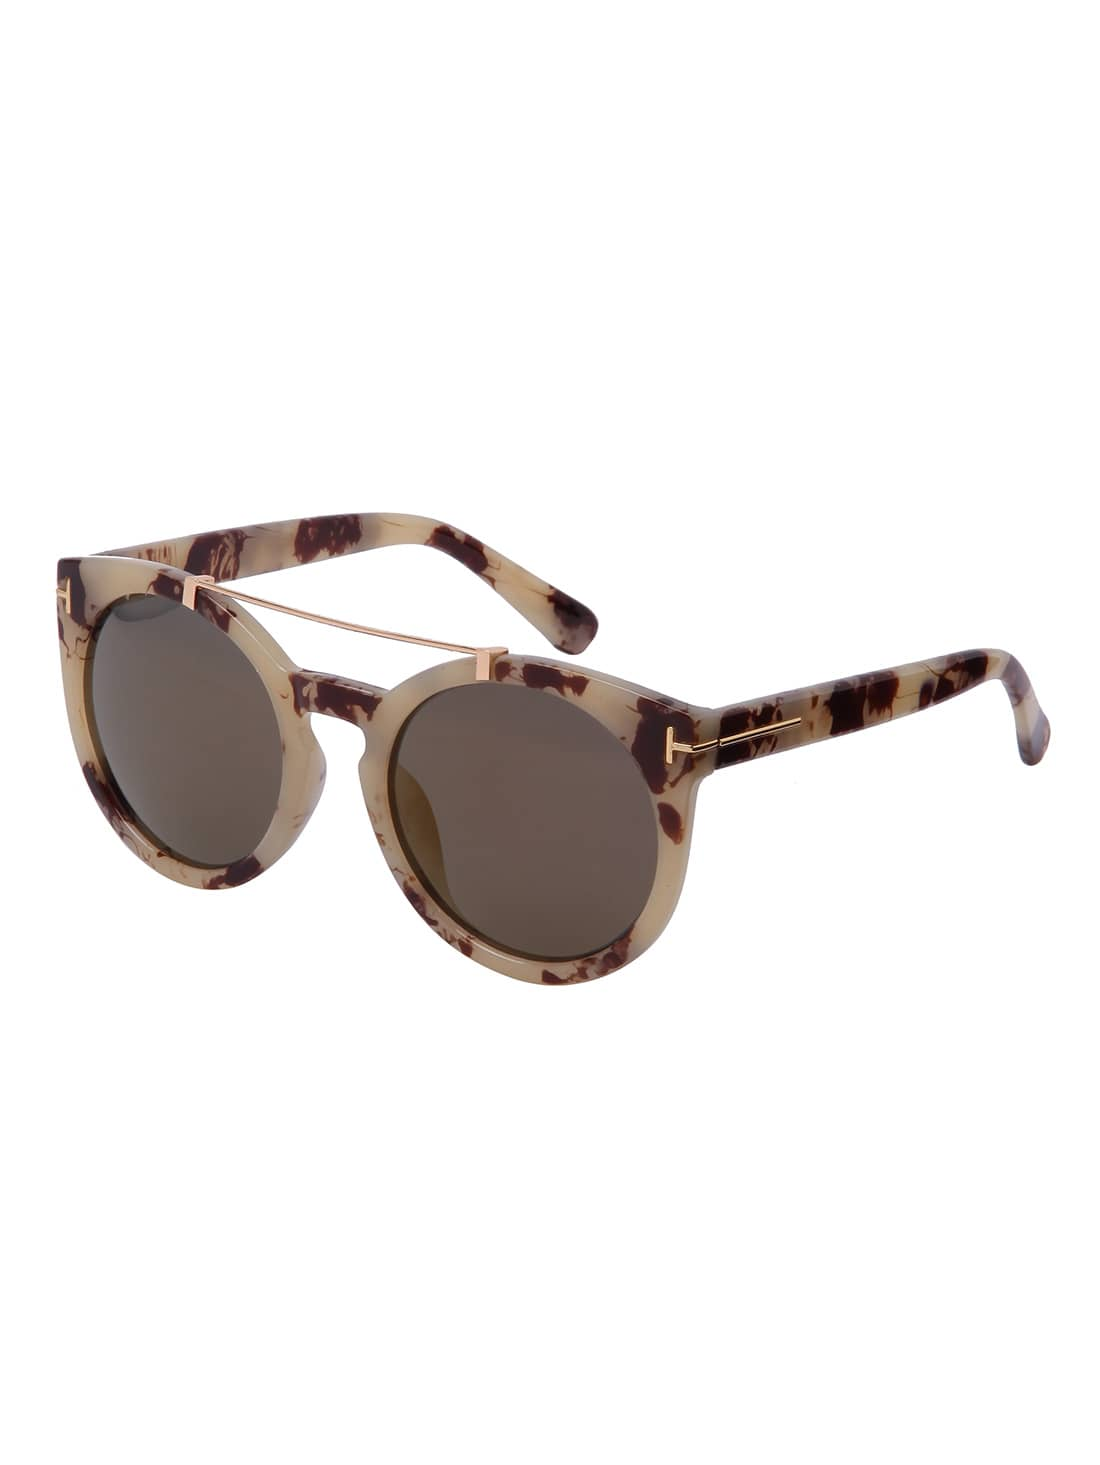 Brown Frame Top Bar Oversized Round SunglassesBrown Frame Top Bar Oversized Round Sunglasses<br><br>color: Brown<br>size: None